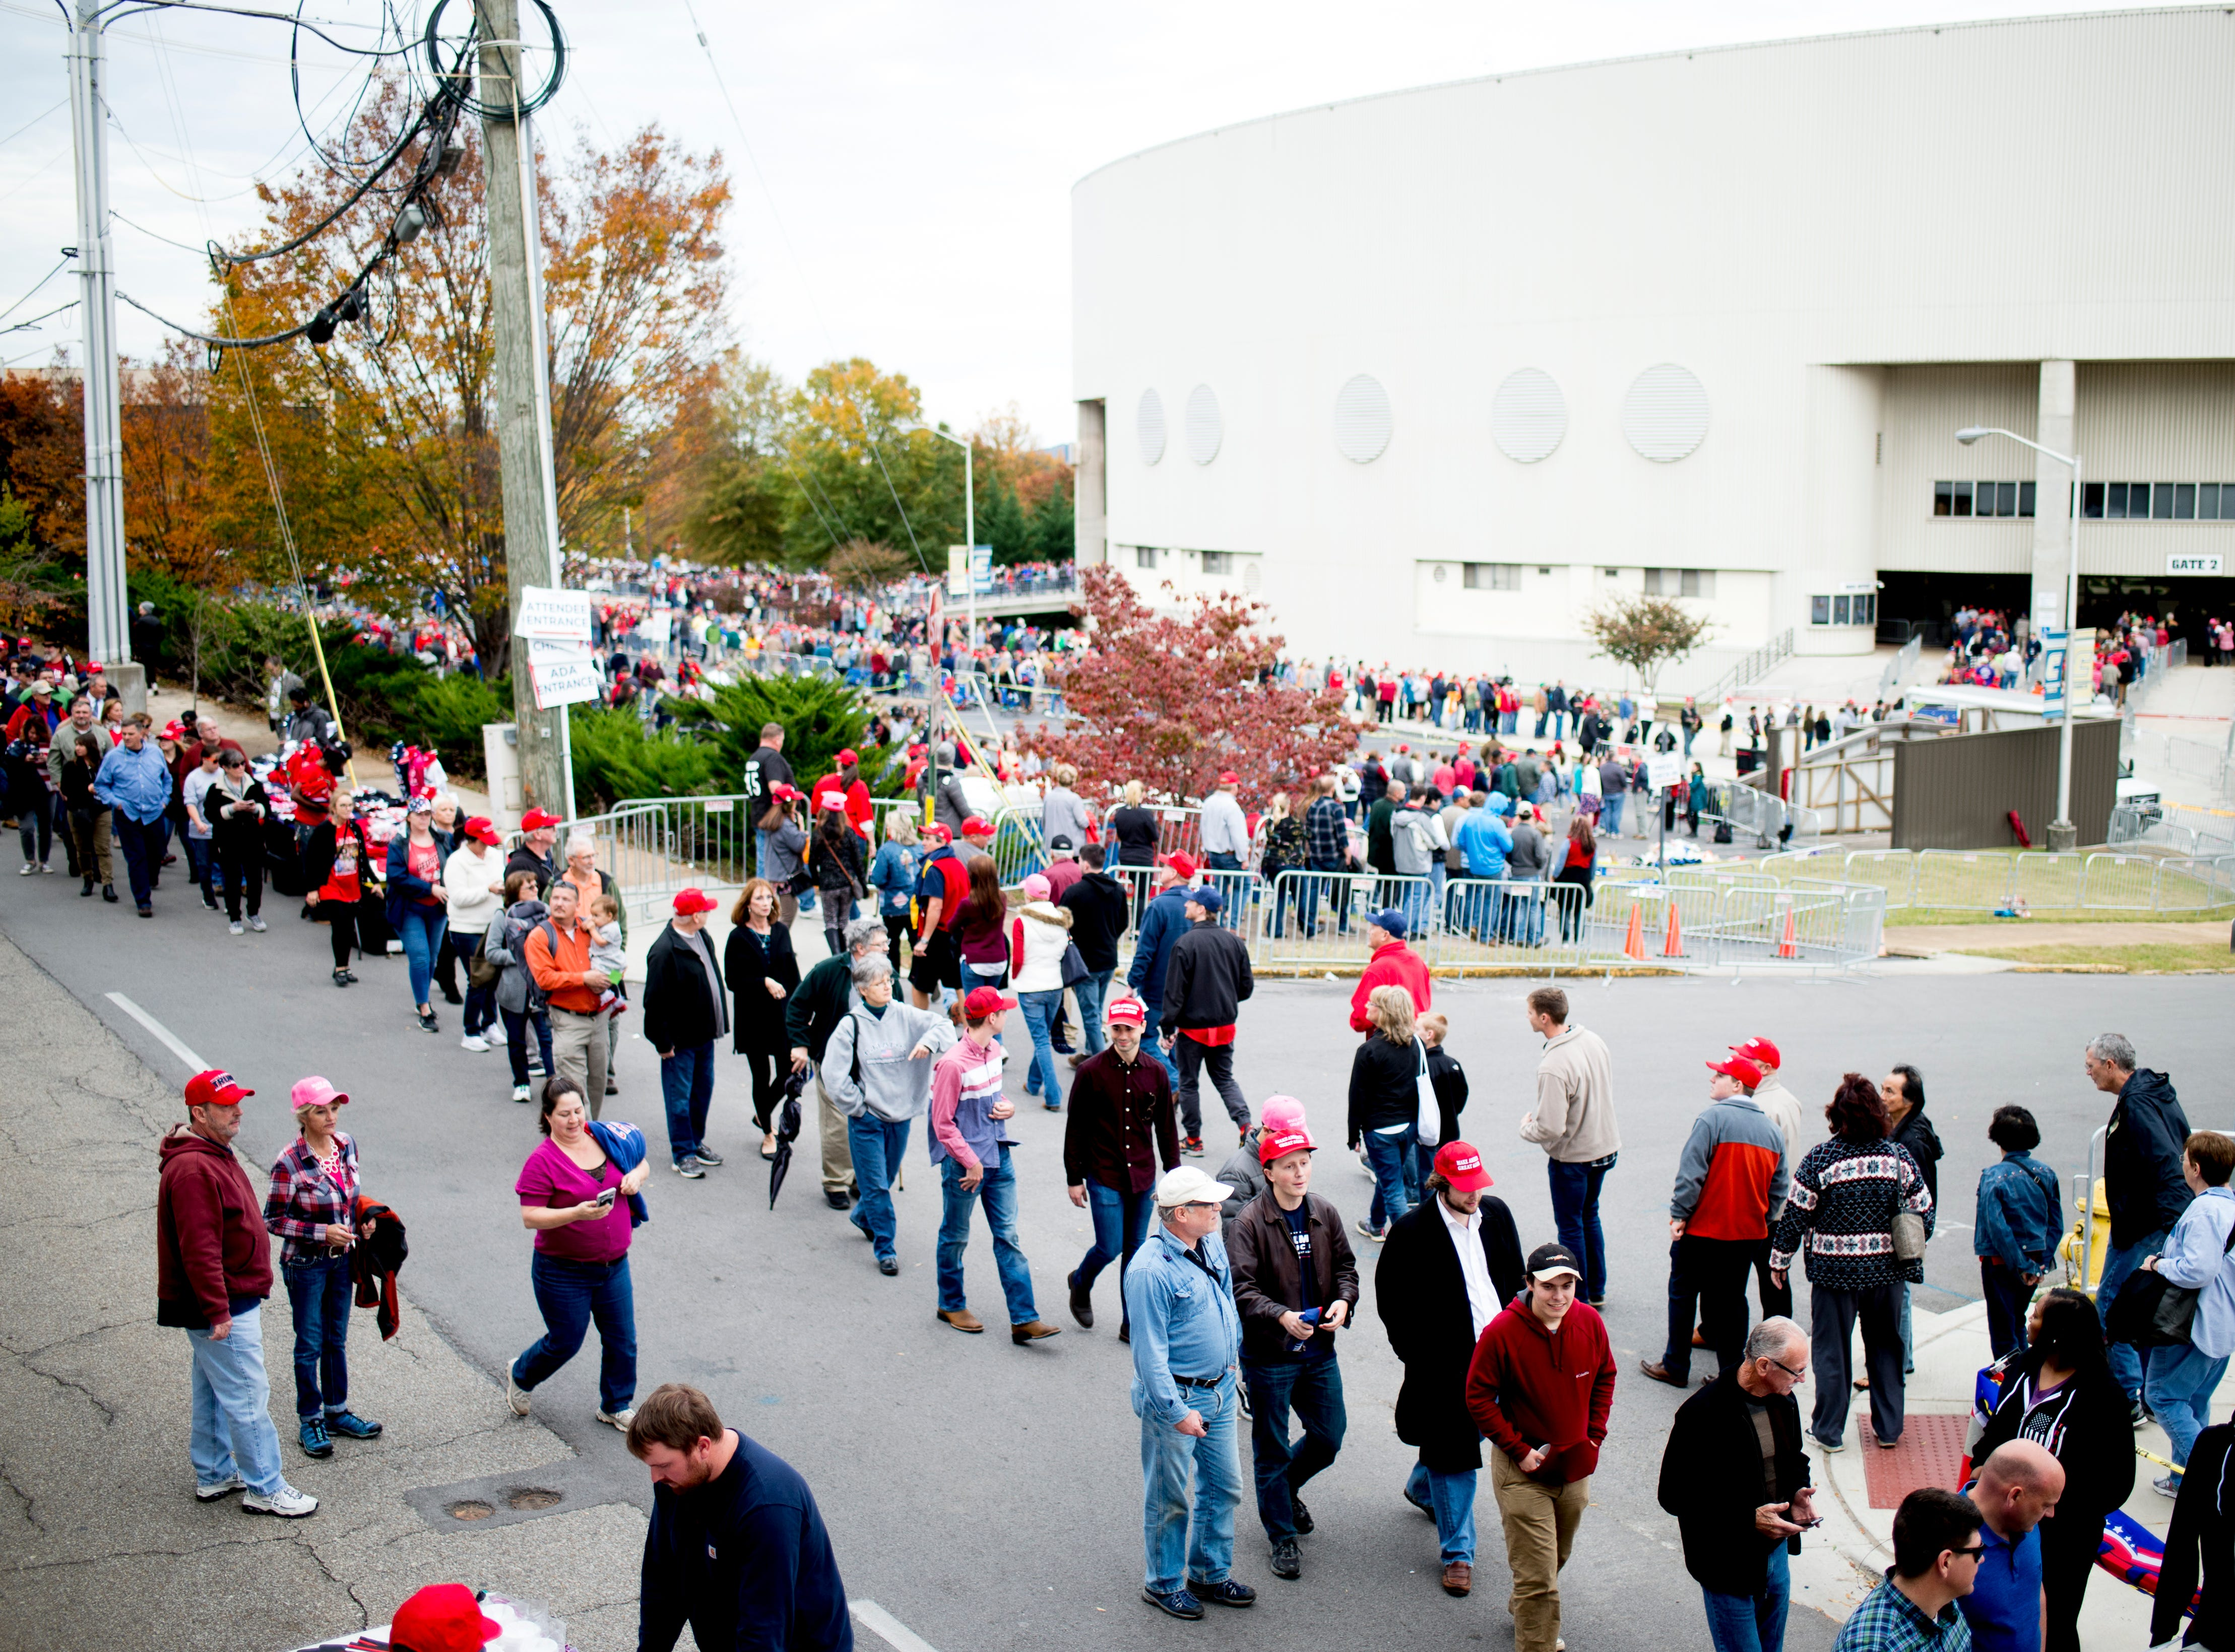 """Long lines form around the arena ahead of President Donald J. Trump's """"Make America Great Again"""" Rally at McKenzie Arena in Chattanooga, Tennessee on Sunday, November 4, 2018."""